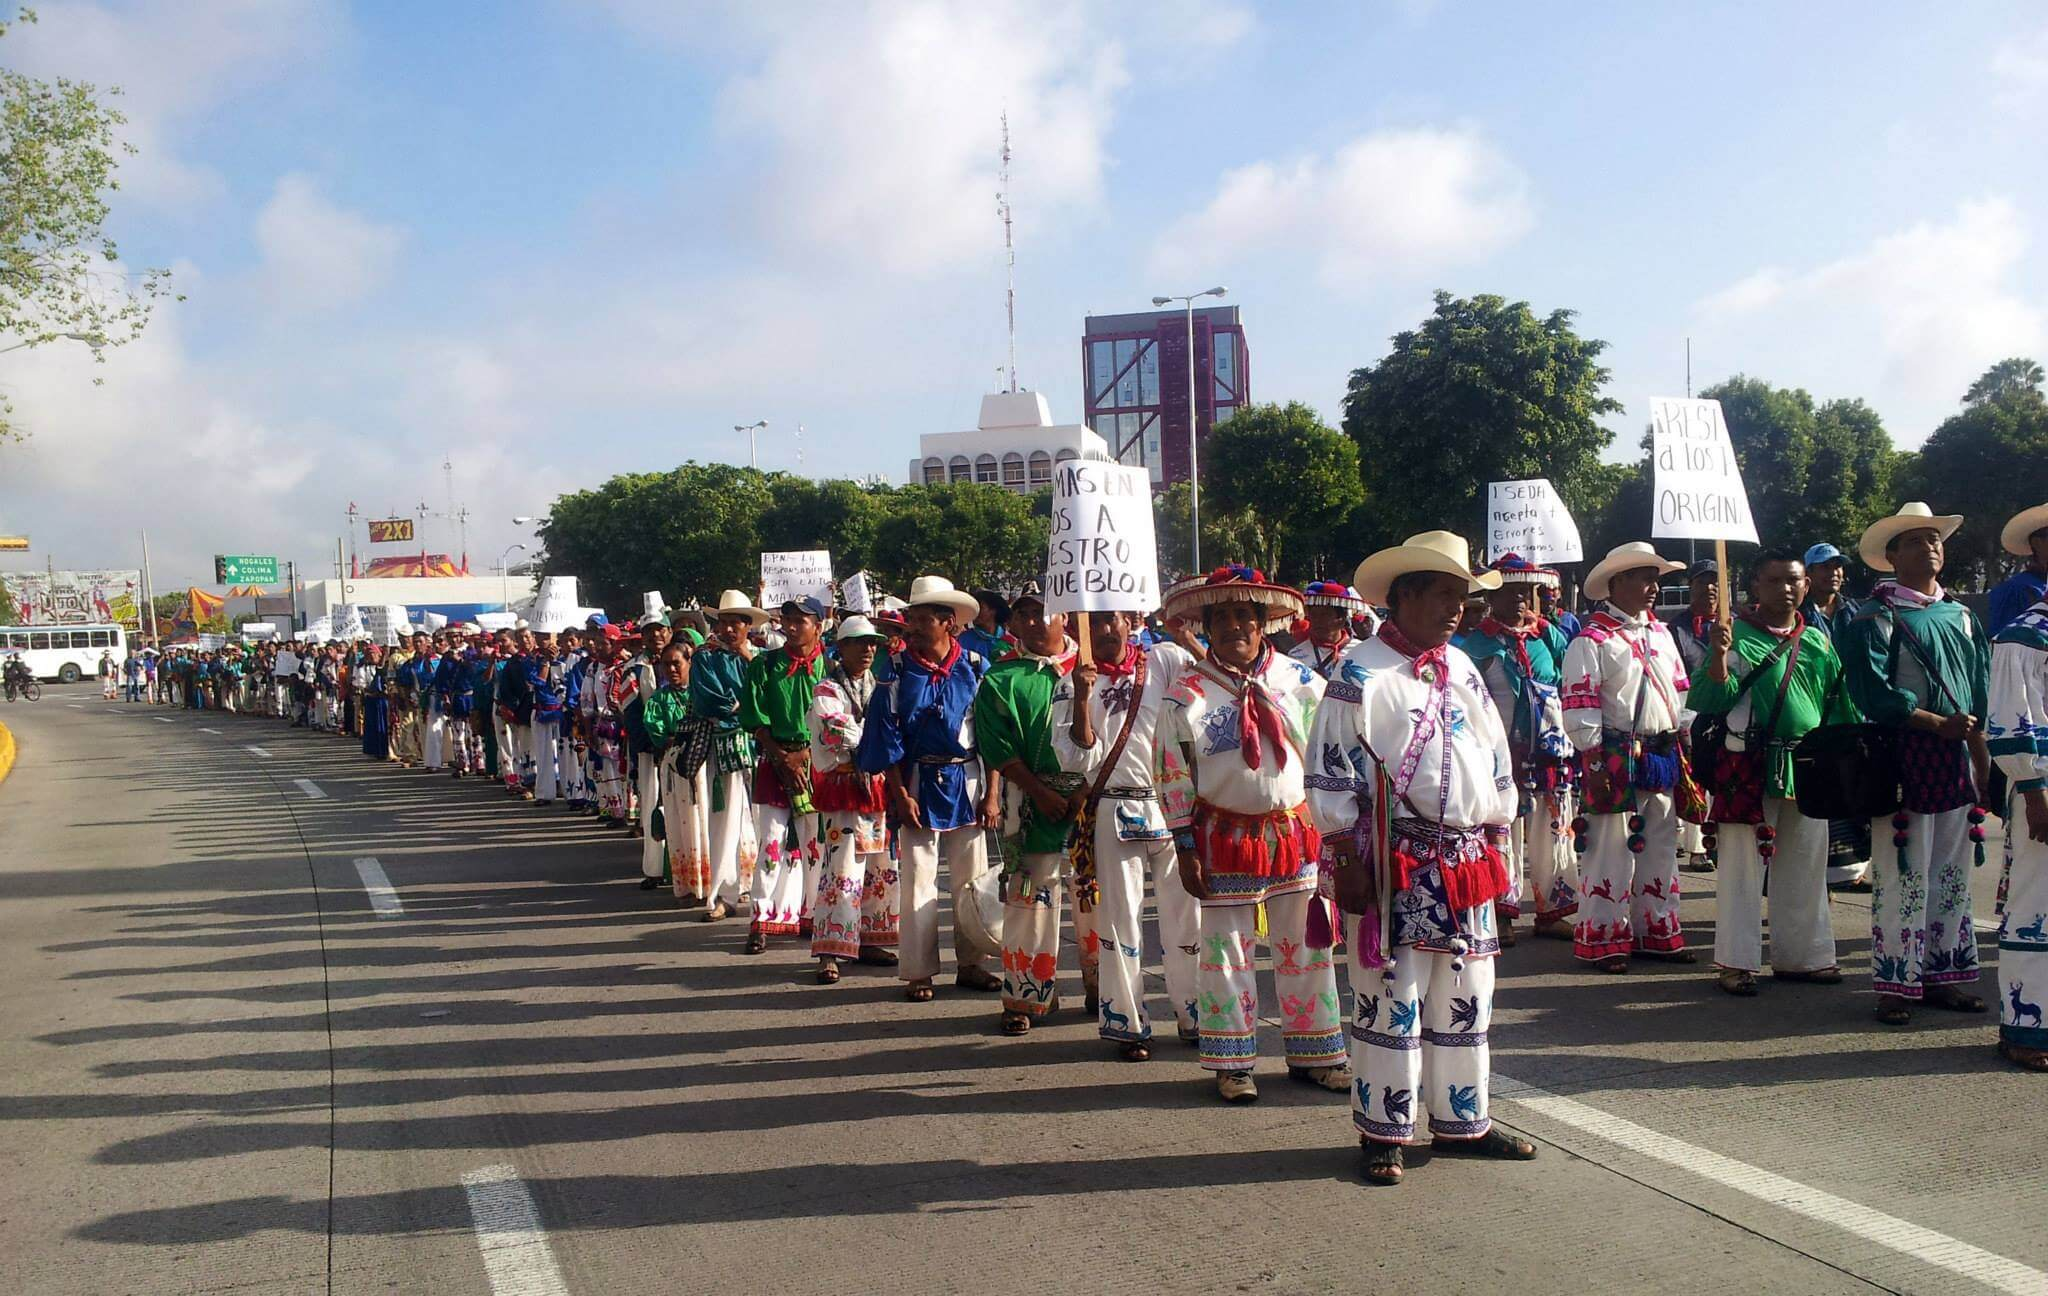 Members of the Wixarika community of San Sebastian Teponahuaxtlán protesting for land reform in Guadalajara in 2014. Photo from the Facebook pages of the community of San Sebastian(Wuaut+a).